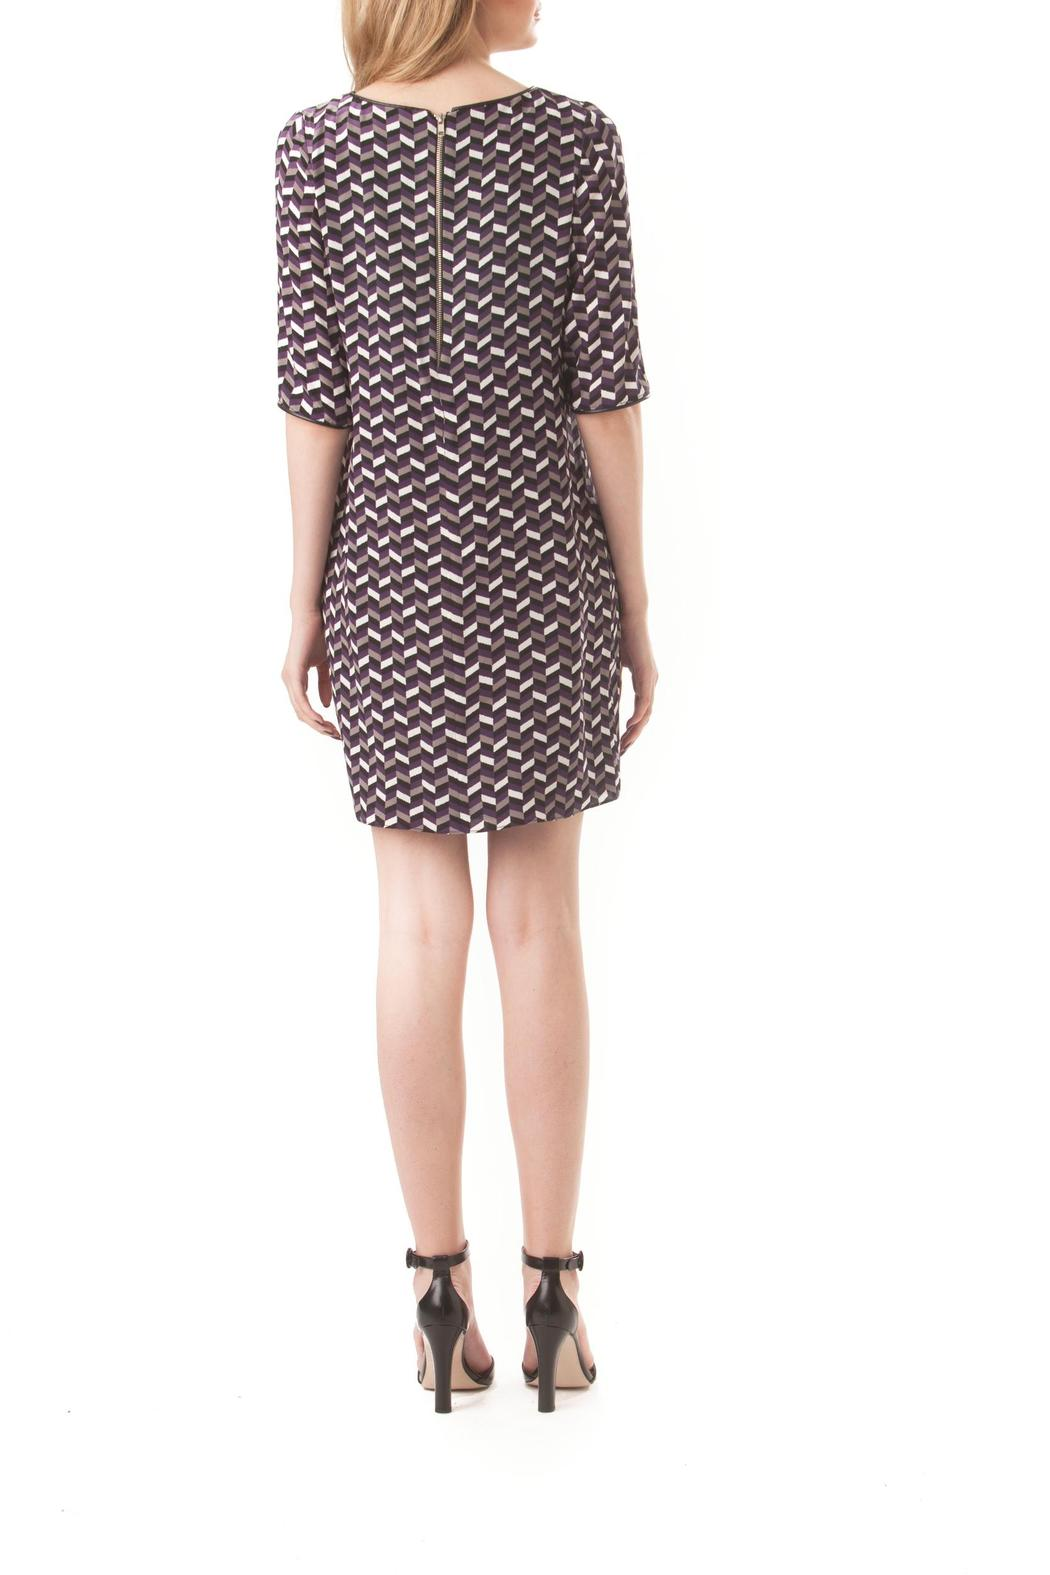 Leona Silk Chevron Dress - Back Cropped Image